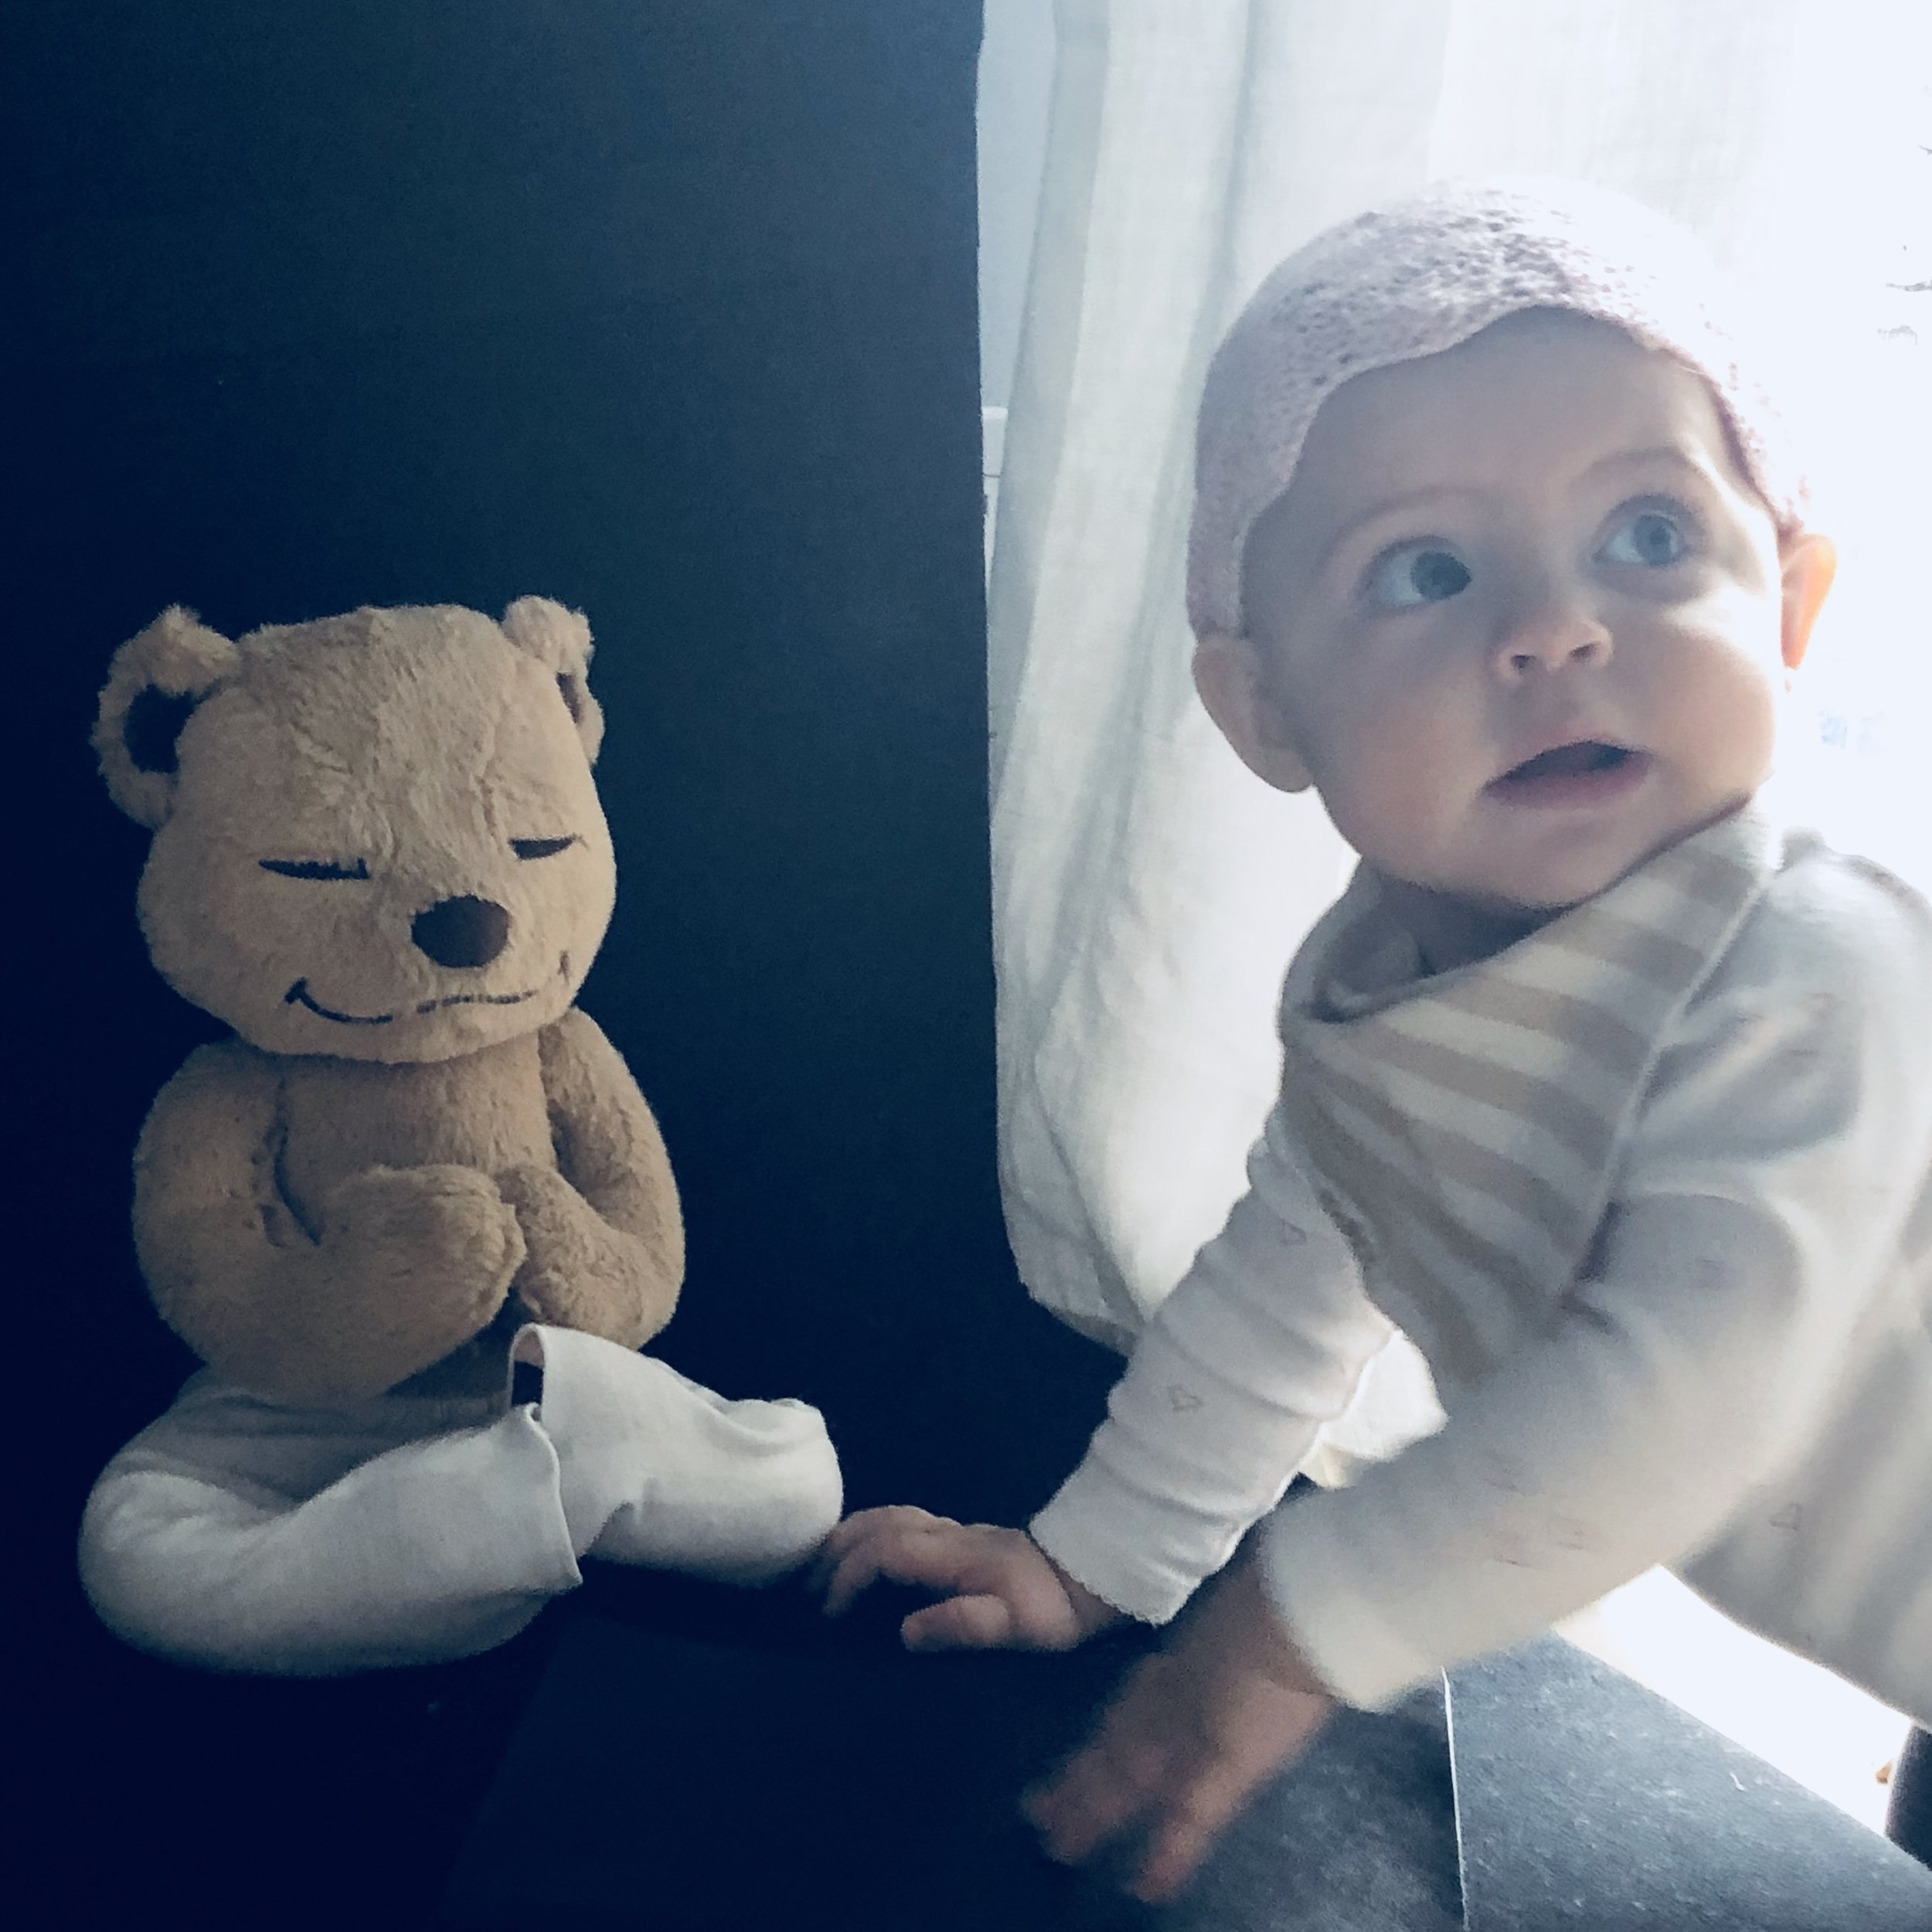 Inspirational Addict Writer Andrea Bogart Sonoma Mama Actress Health and Wellness Yoga Instructor Baby Girl with Meddy Teddy Meditation Yoga Bear